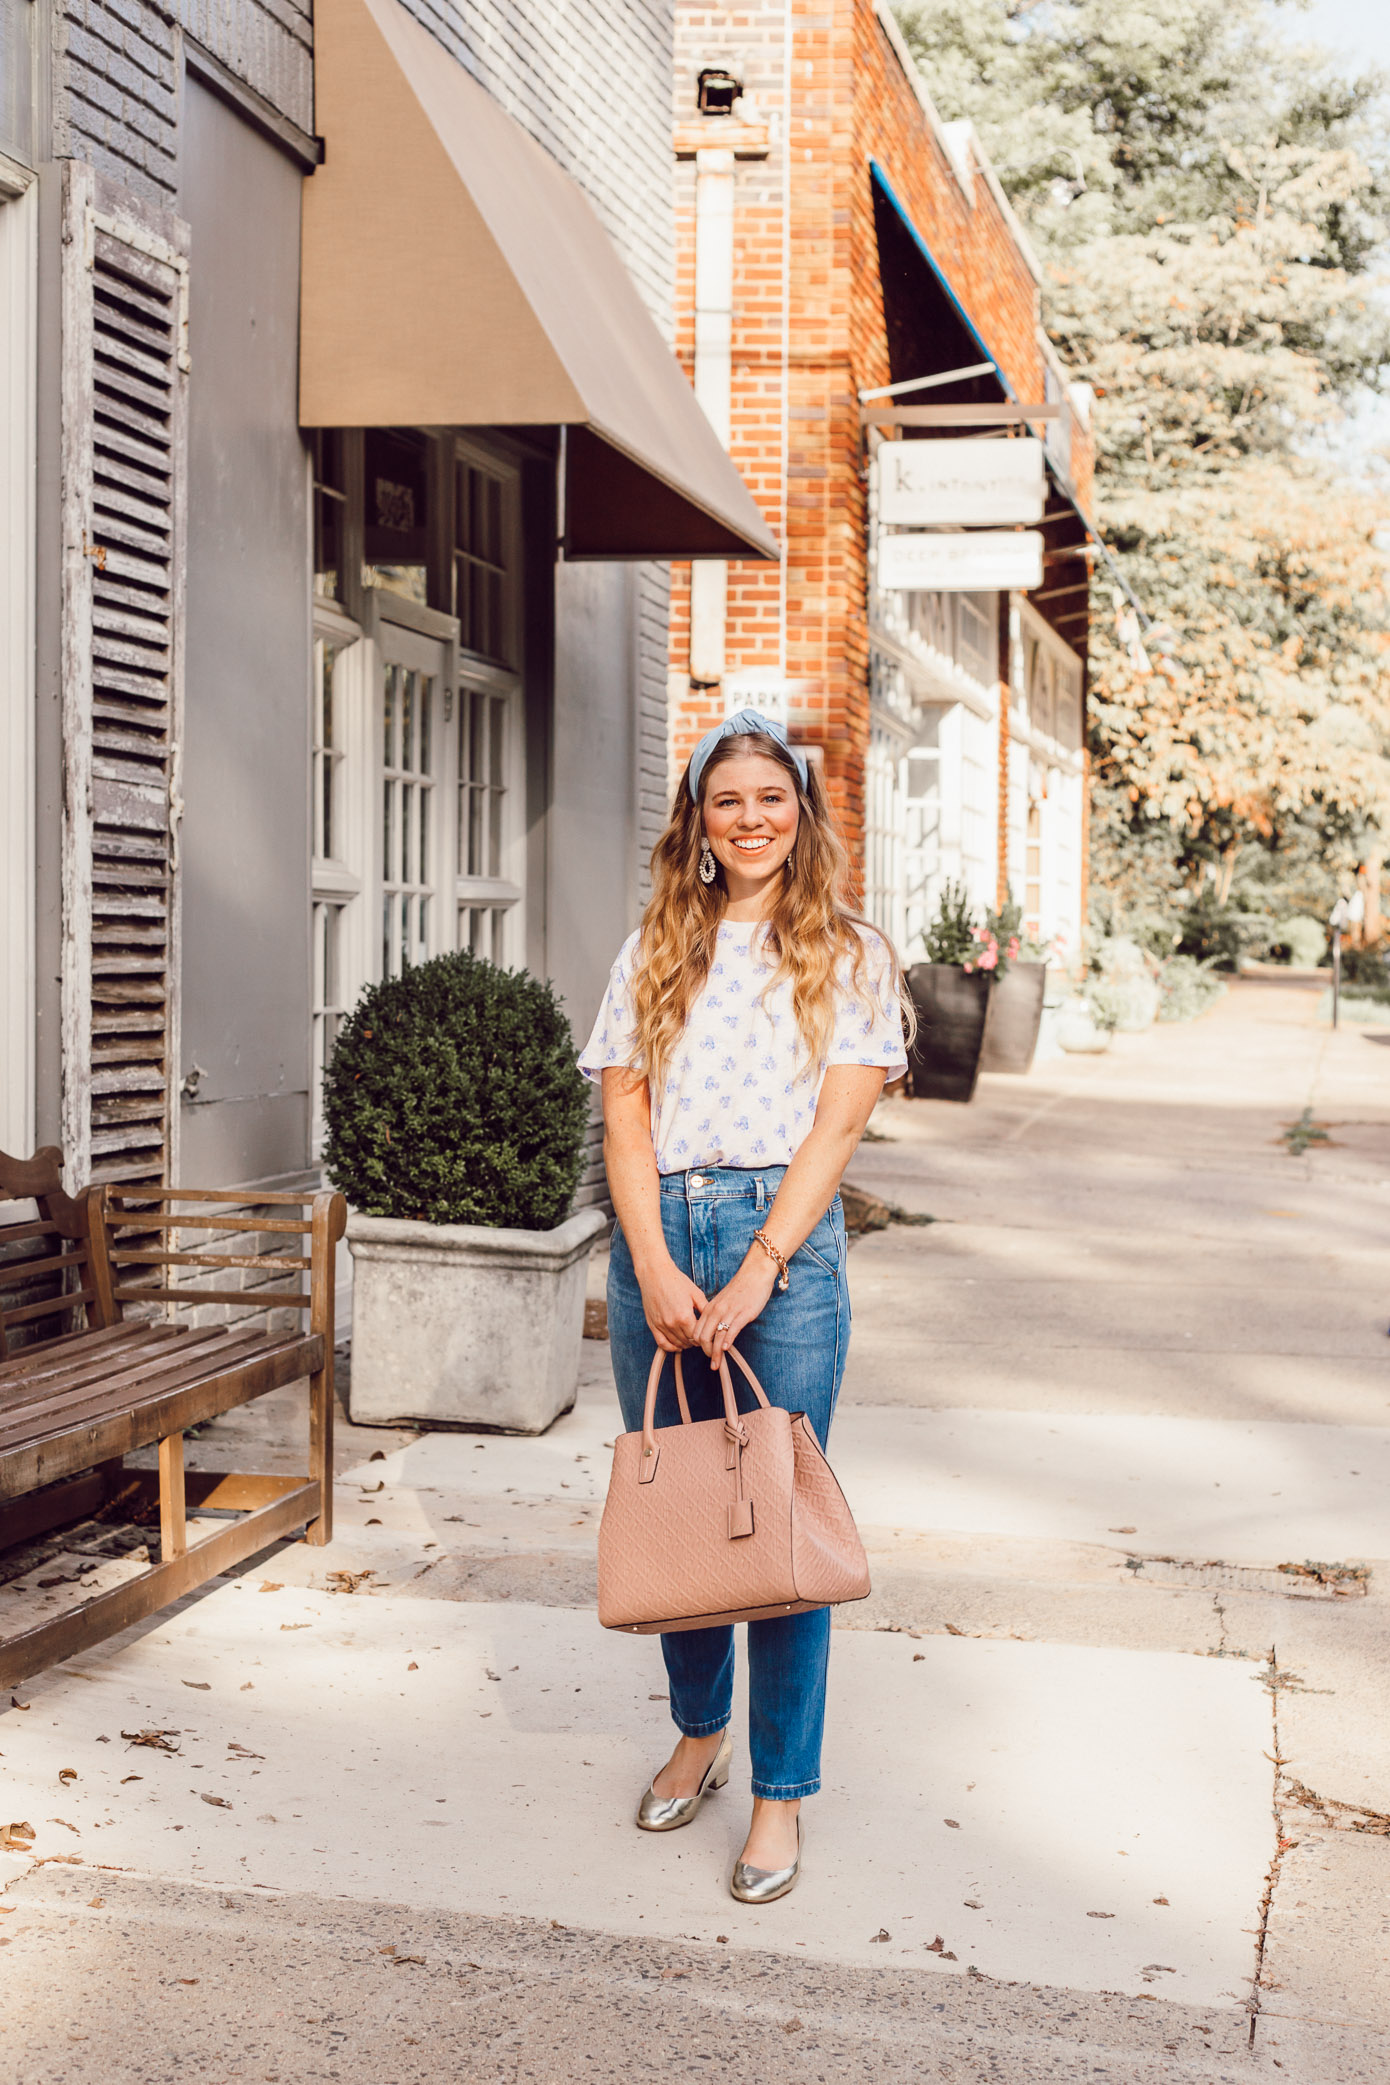 J.Crew Floral Tee Shirt for Fall | Fashion Faux Pas or Time Tested Trend featured on Louella Reese Blog